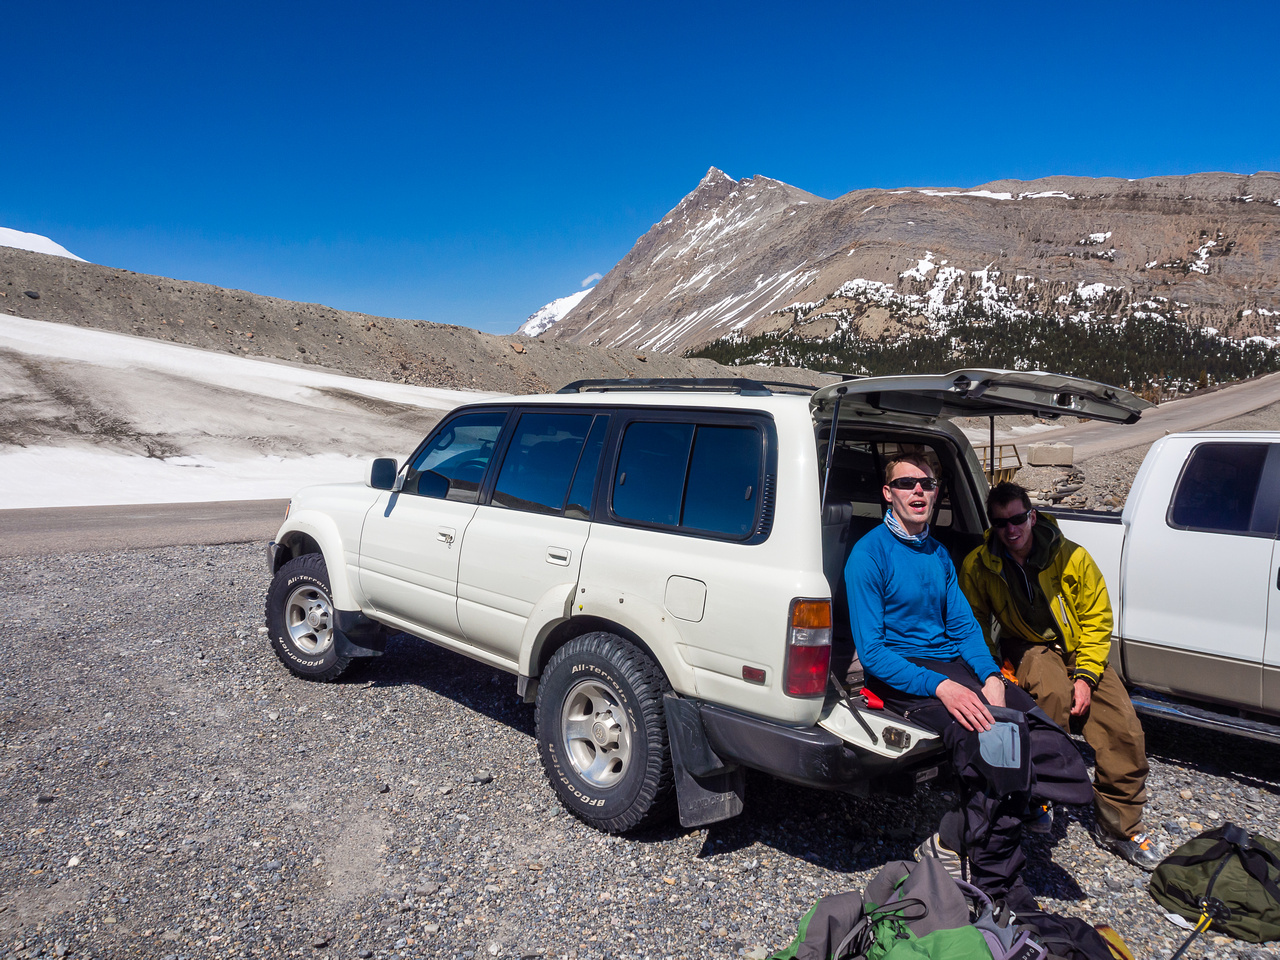 The end of another Rockies adventure!